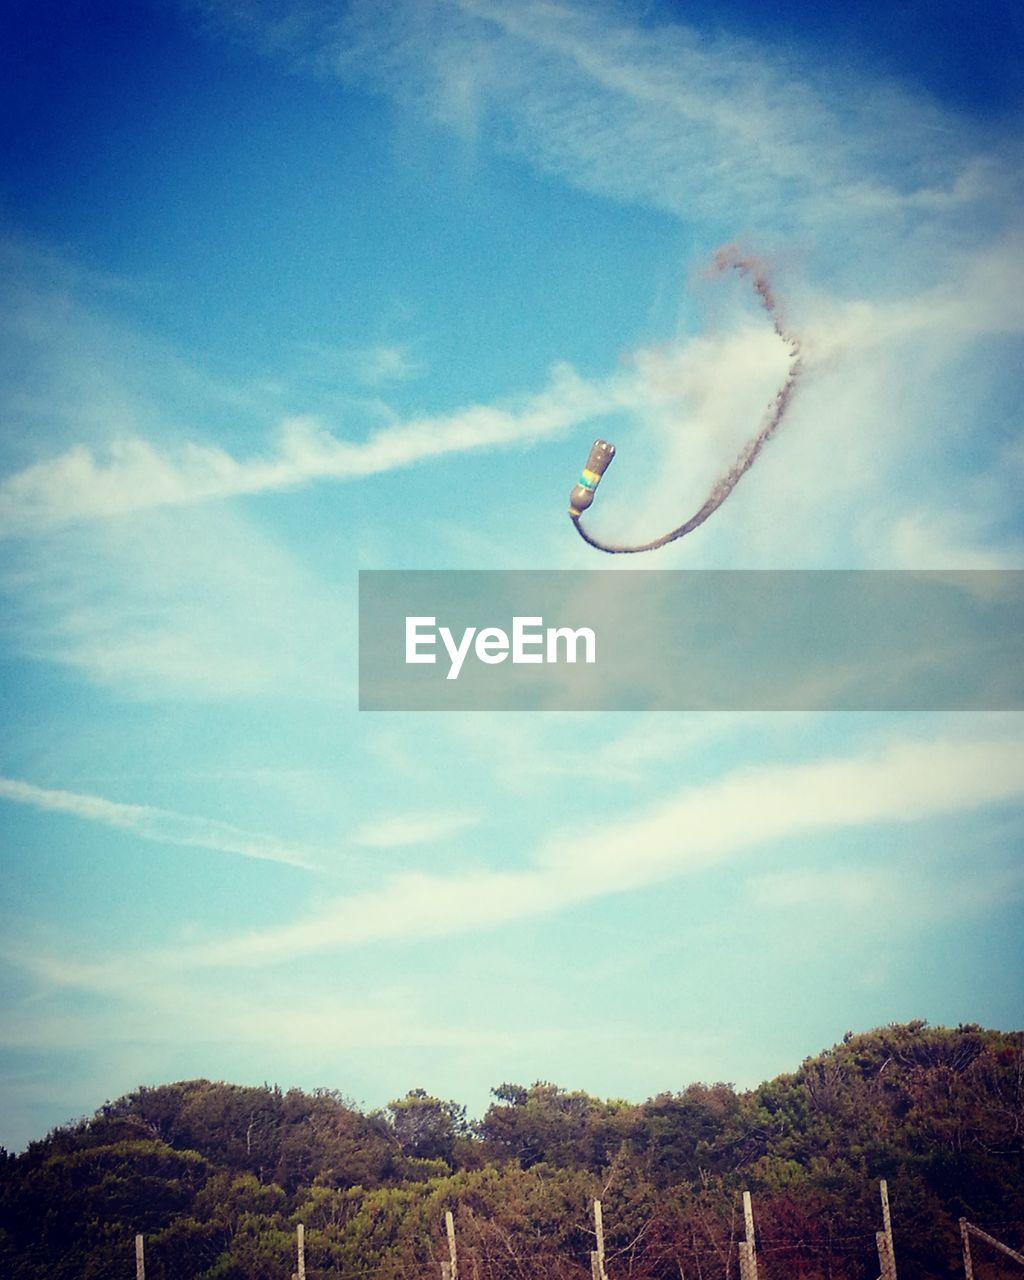 sky, mid-air, low angle view, flying, day, cloud - sky, motion, outdoors, nature, vapor trail, blue, no people, tree, airshow, beauty in nature